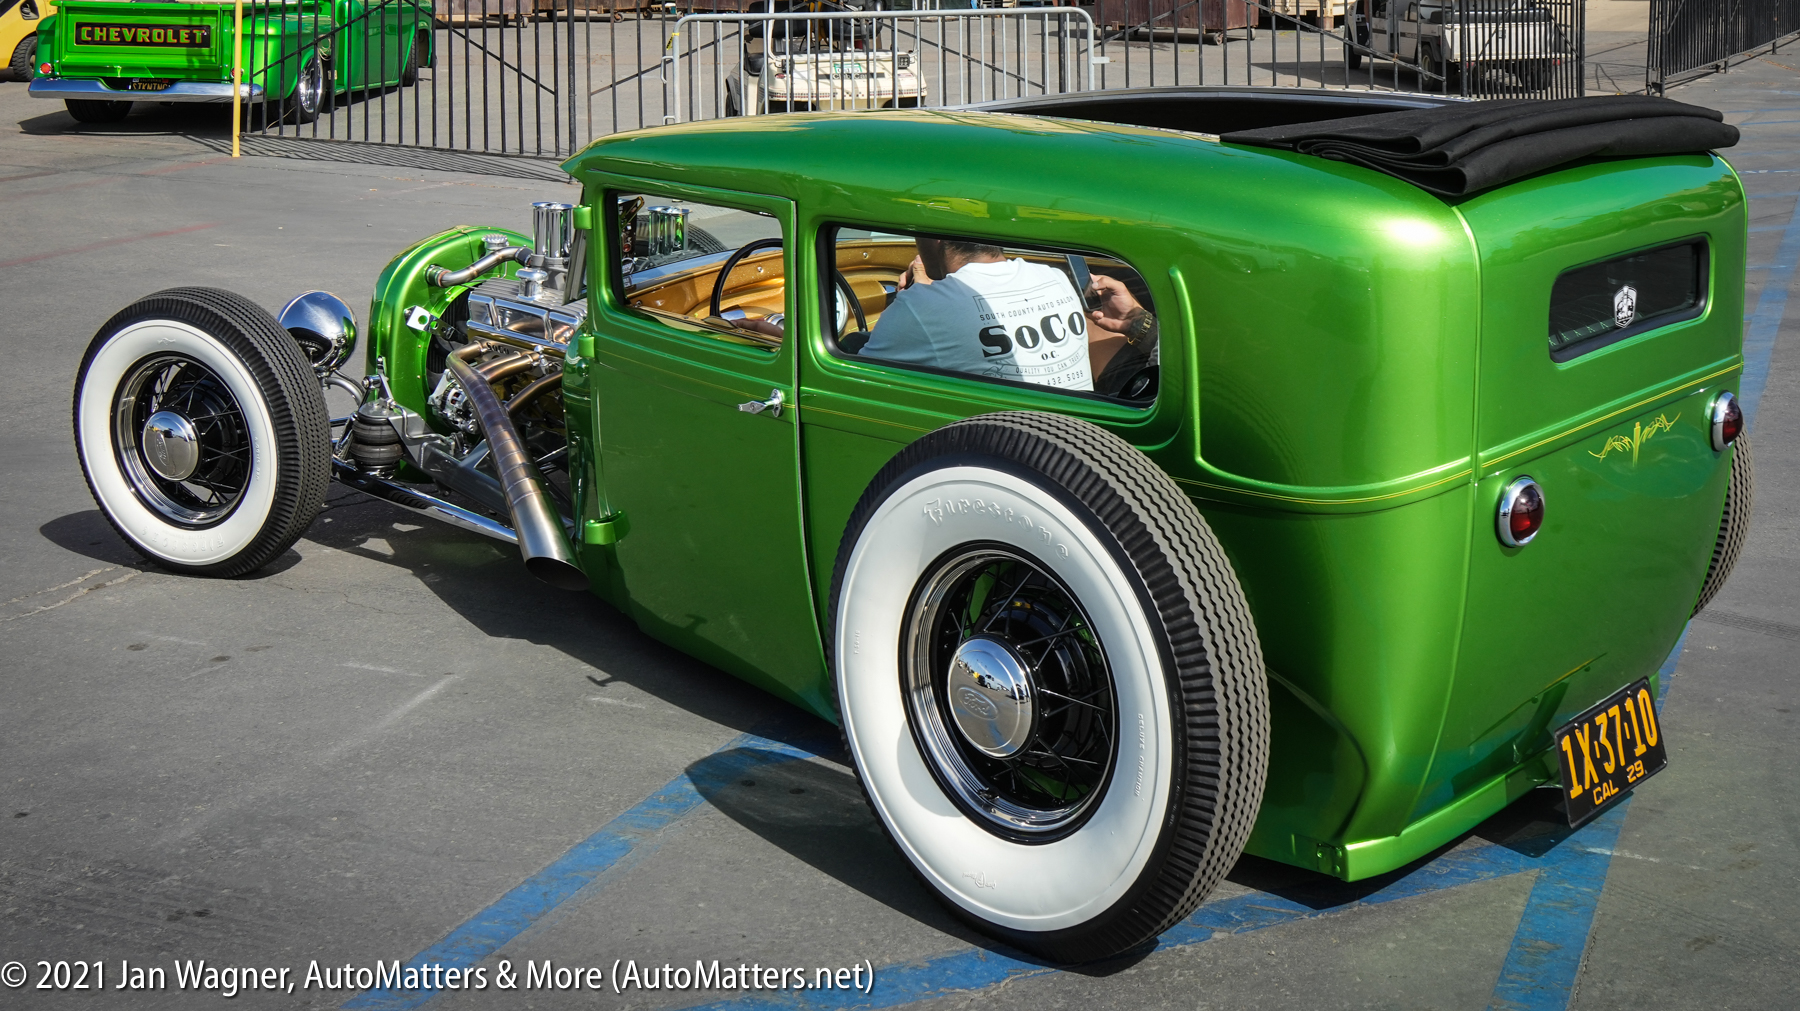 02000-20210930-1003 Goodguys 20th Del Mar Nationals-Goodguys Autocross+Winners Circle awards ceremony w iPh AUDIO of top award nominees+lowriders after event-28-200 w crop-A1